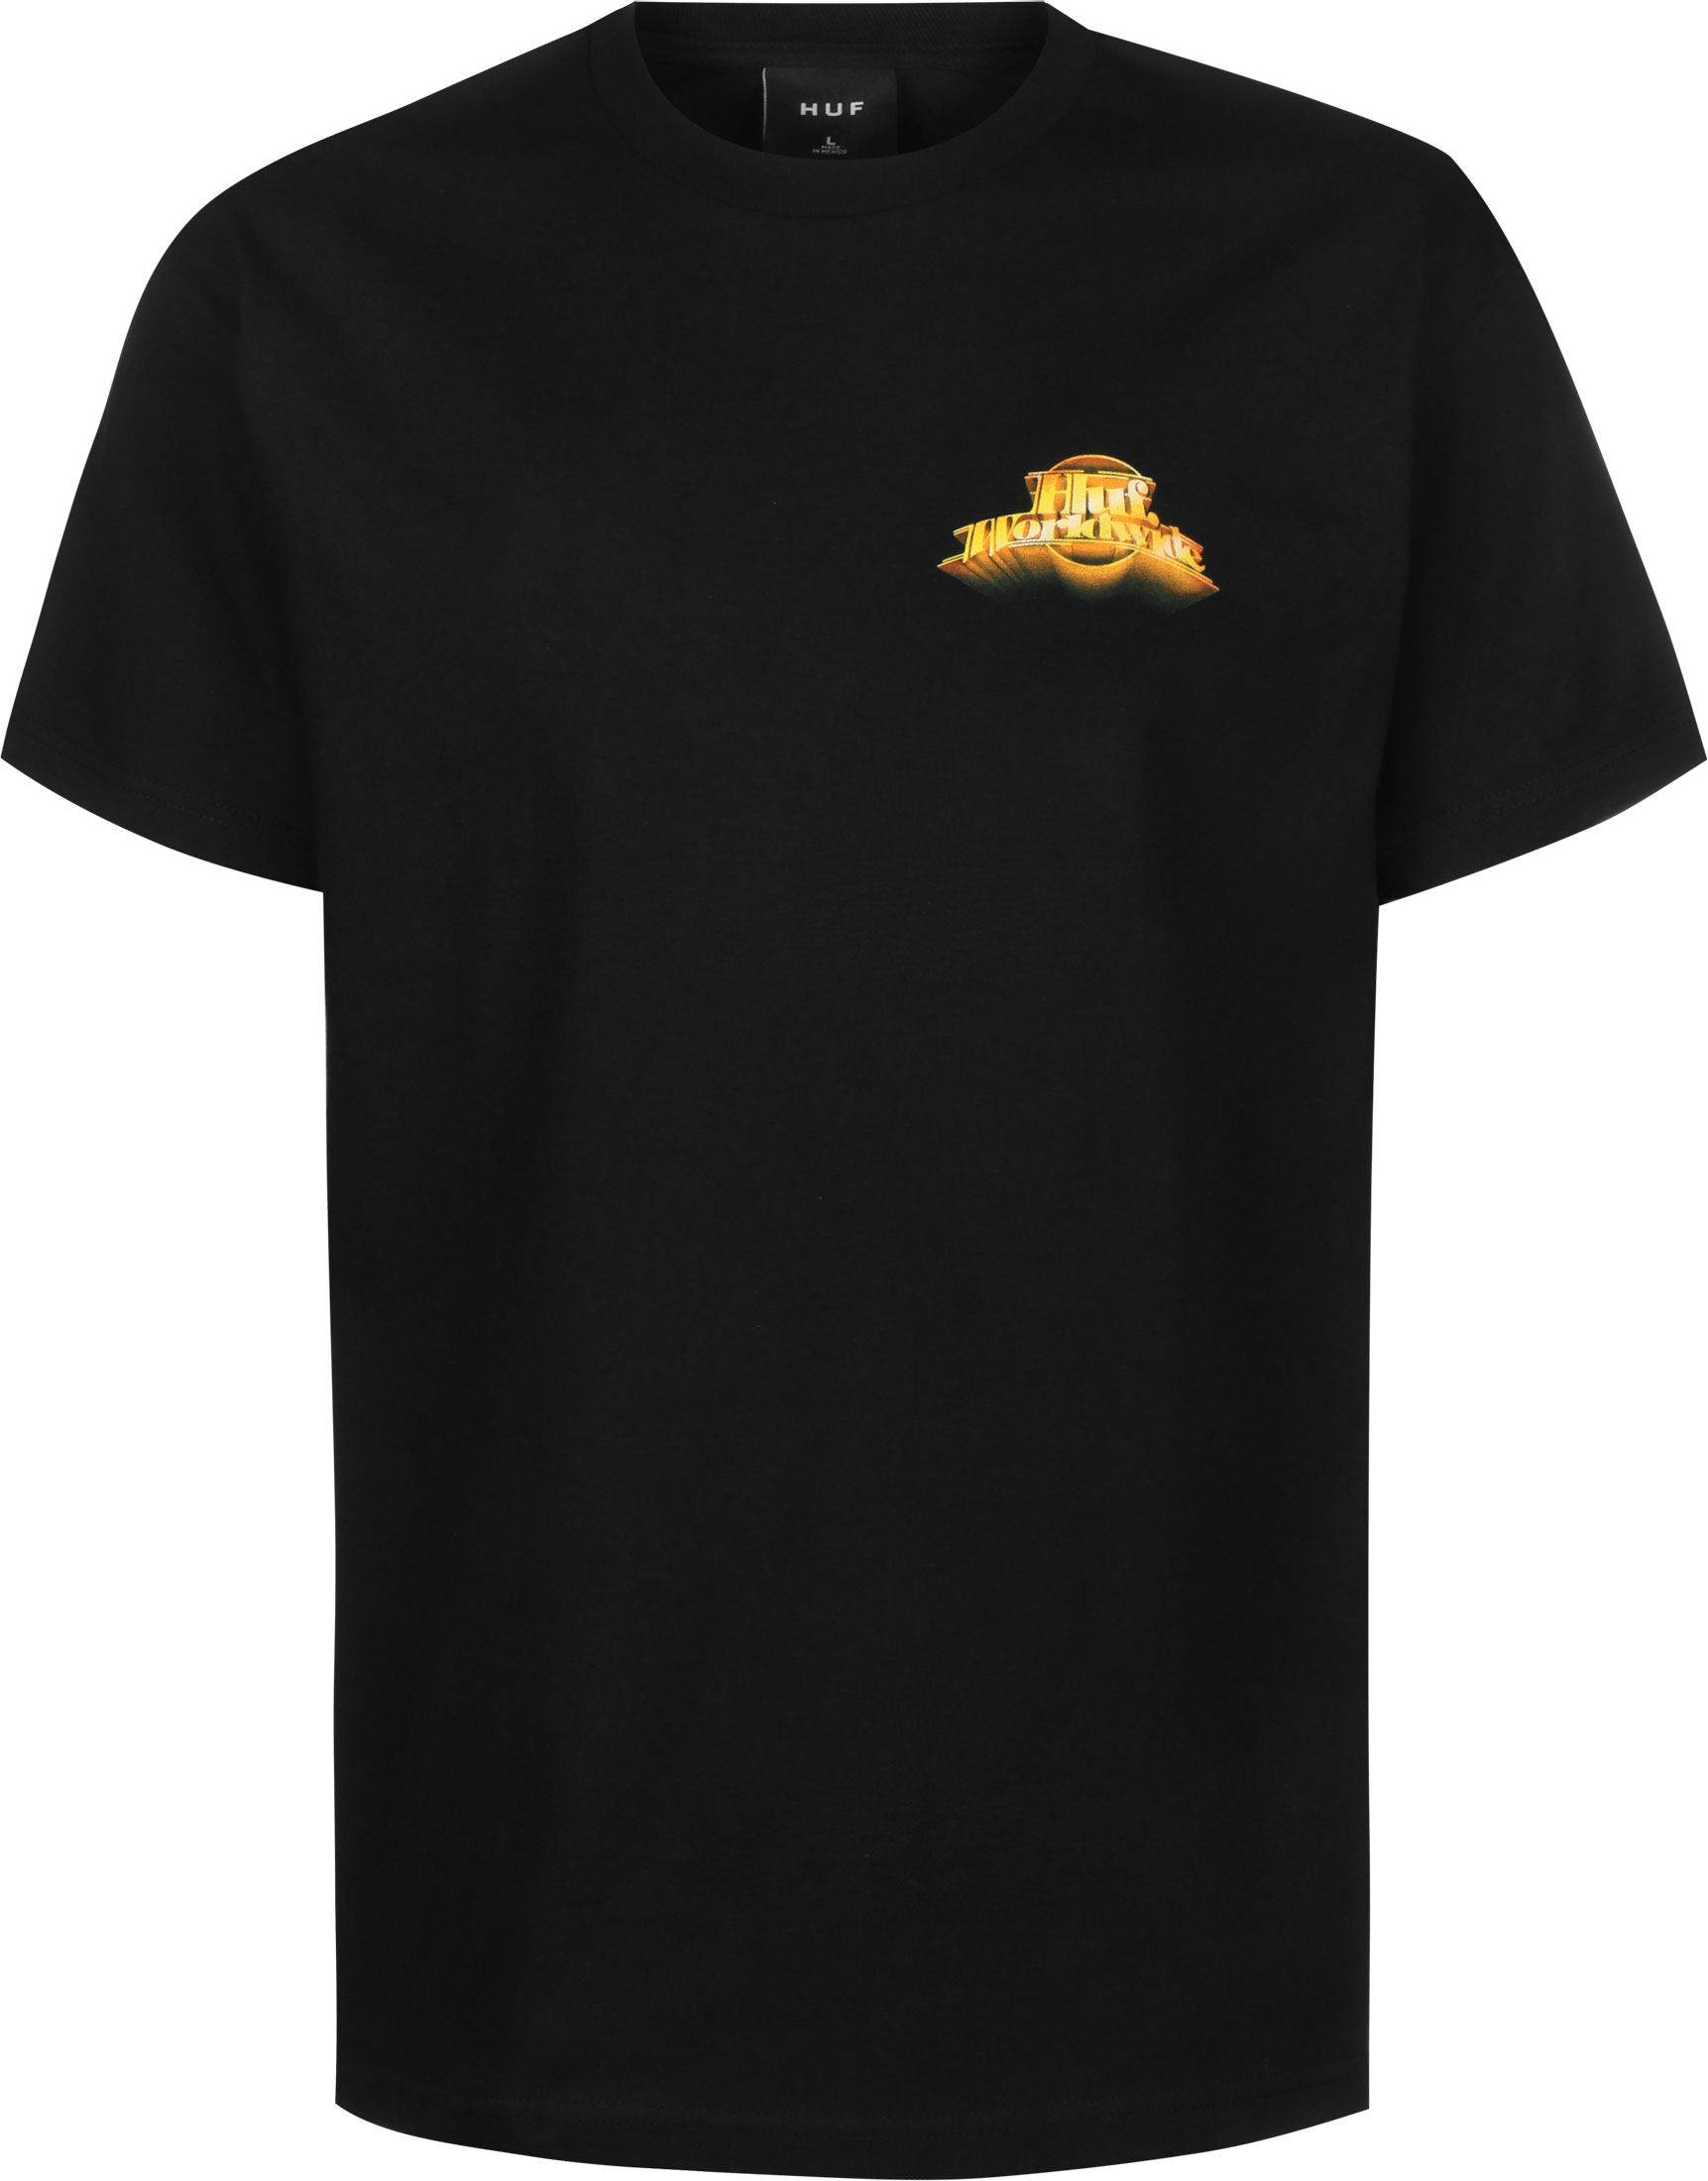 HUF Greatest Hits, taille M, homme, noir